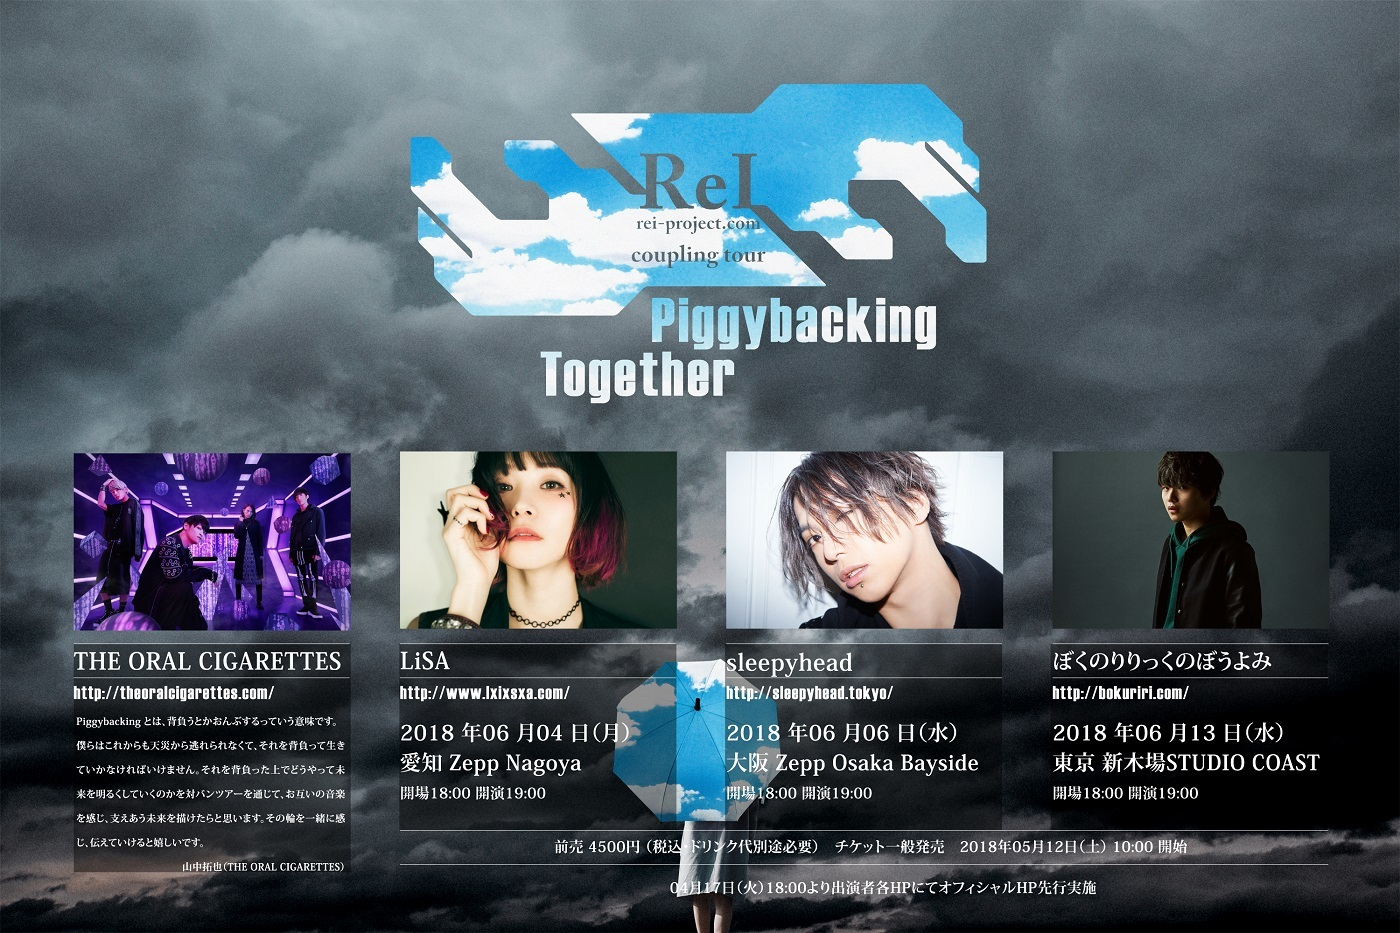 『ReI project coupling tour~Piggybacking Together~』